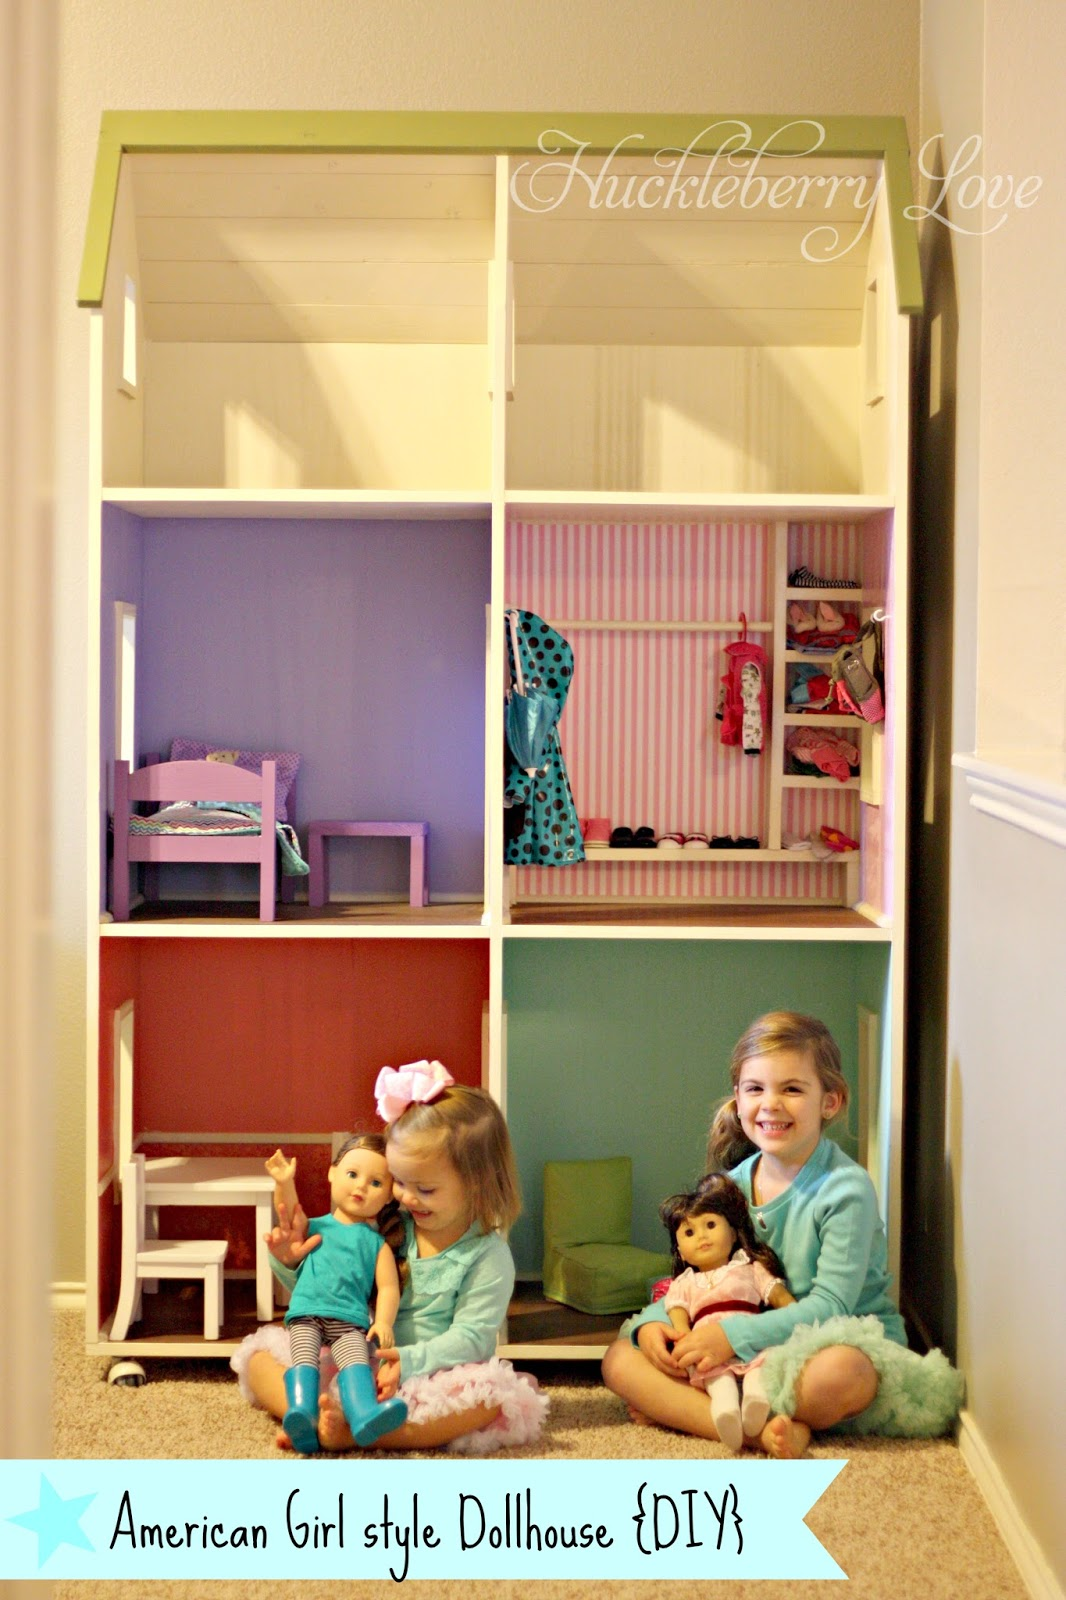 Huckleberry Love American Girl style Dollhouse DIY